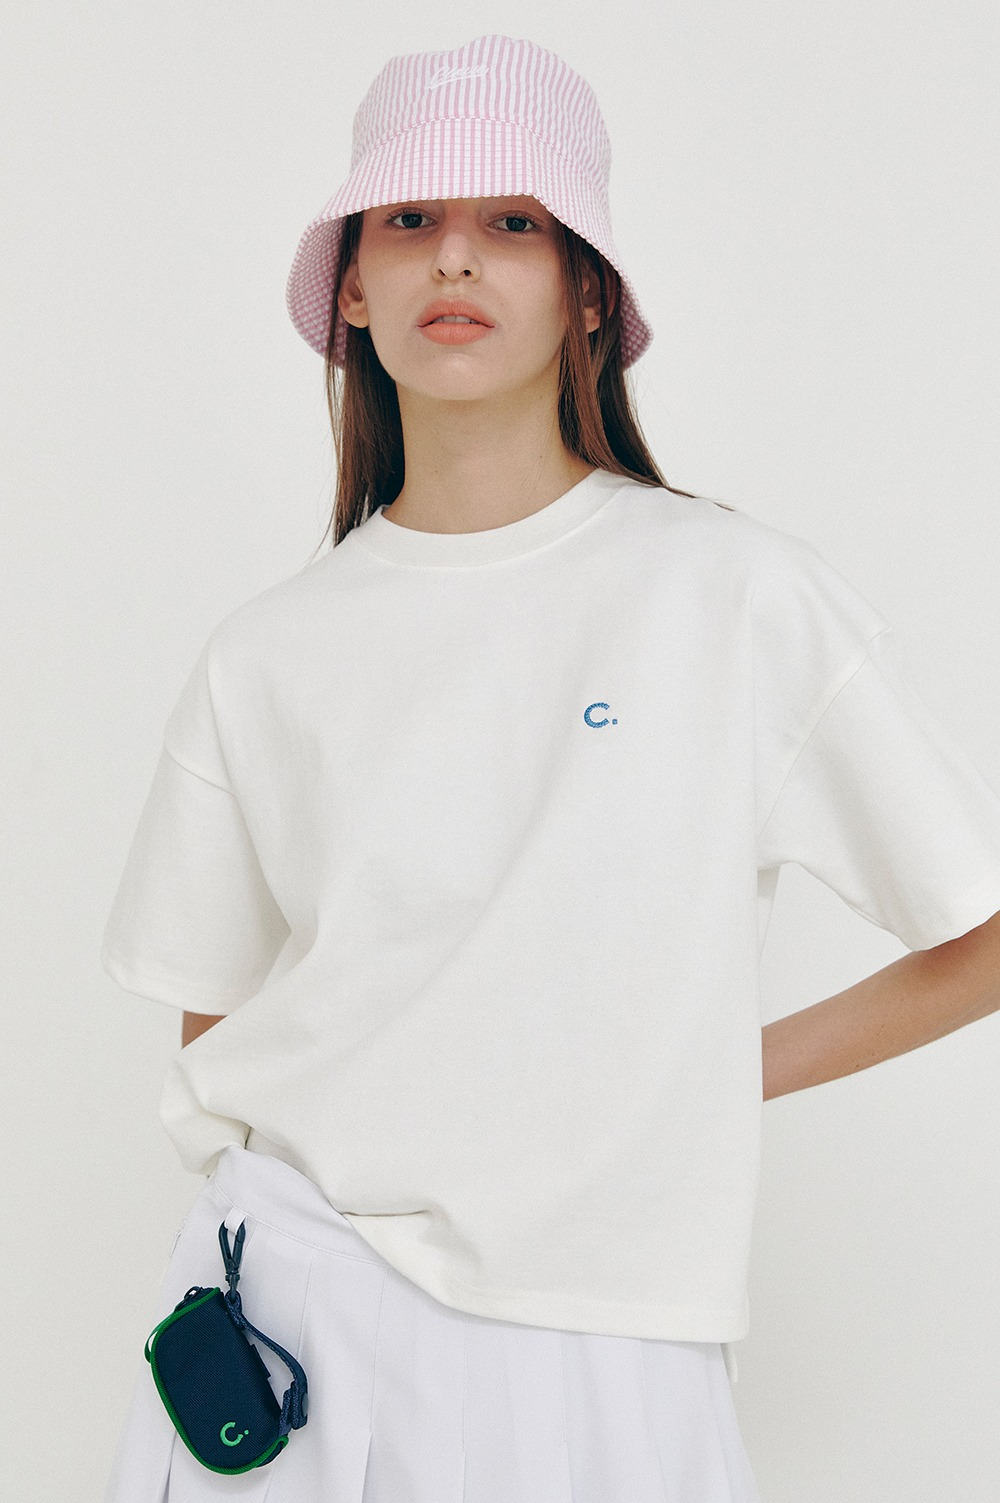 clove - [5/14(금) 예약배송][SS21 clove] Logo Short T-Shirt White